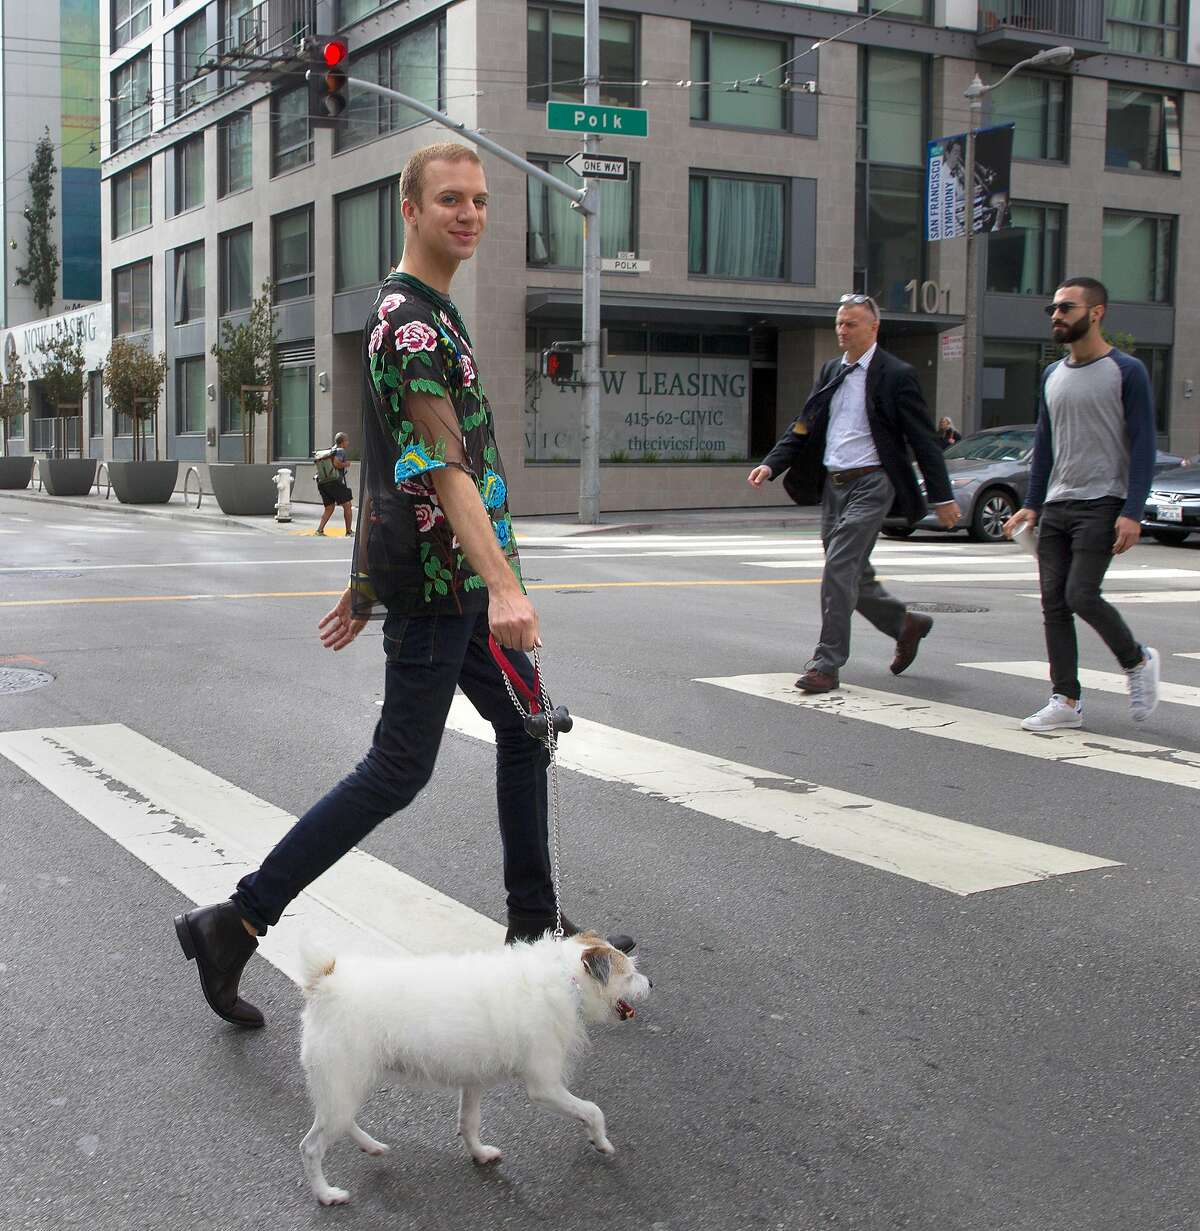 Mark Snyder walks their dog Willy in the Civic Center on Wednesday, September 20, 2017, in San Francisco. Instead of just having male or female designations, Snyder has strong hopes that legislation will pass in California creating a gender-neutral �X� identifier on ID cards.